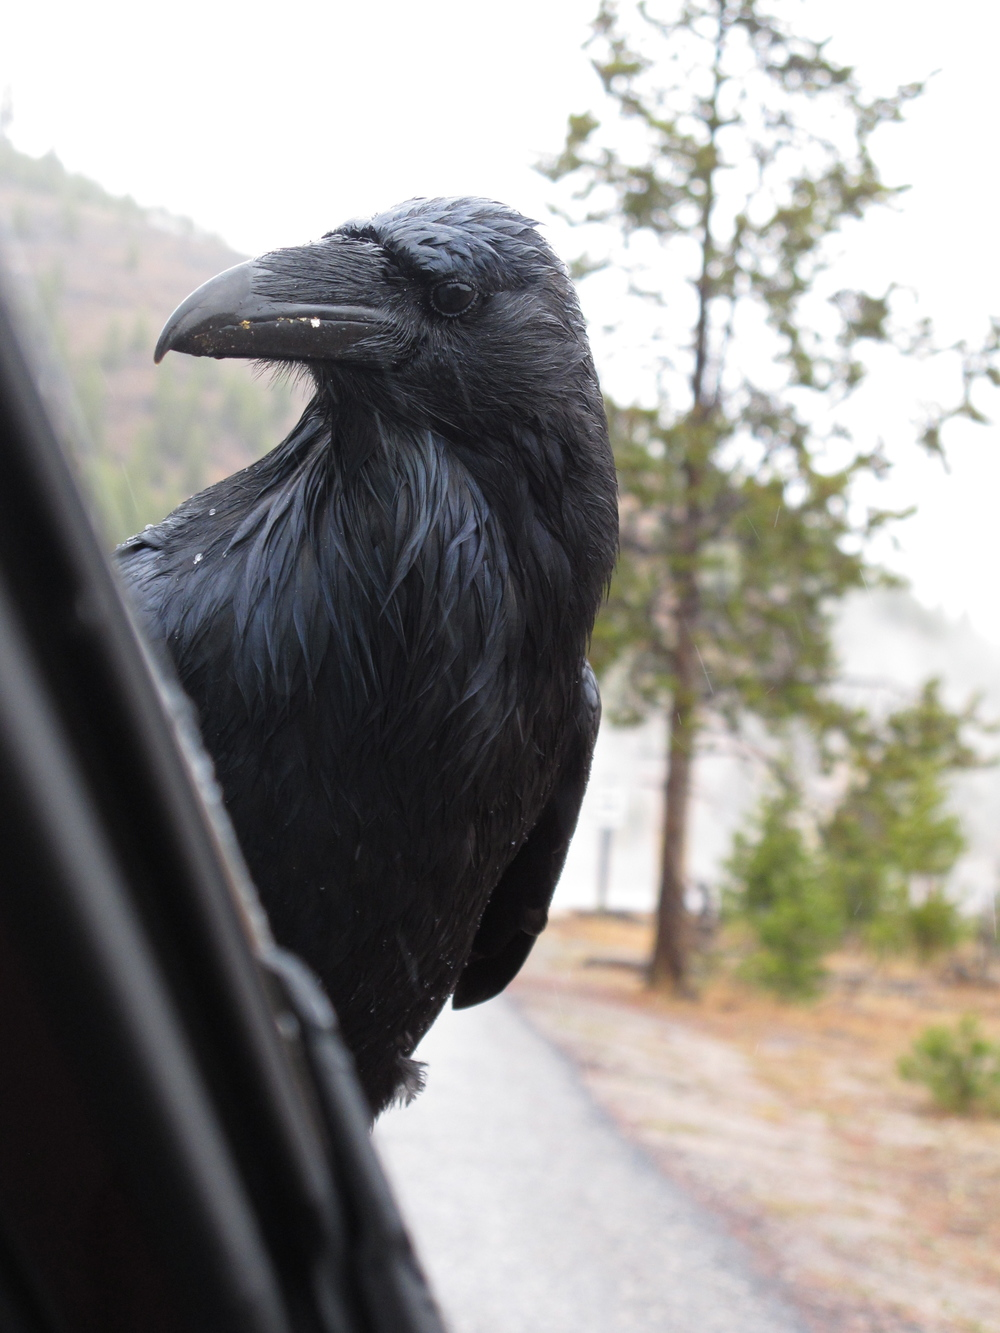 Photo of raven at Yellowstone National Park by Craig Neff